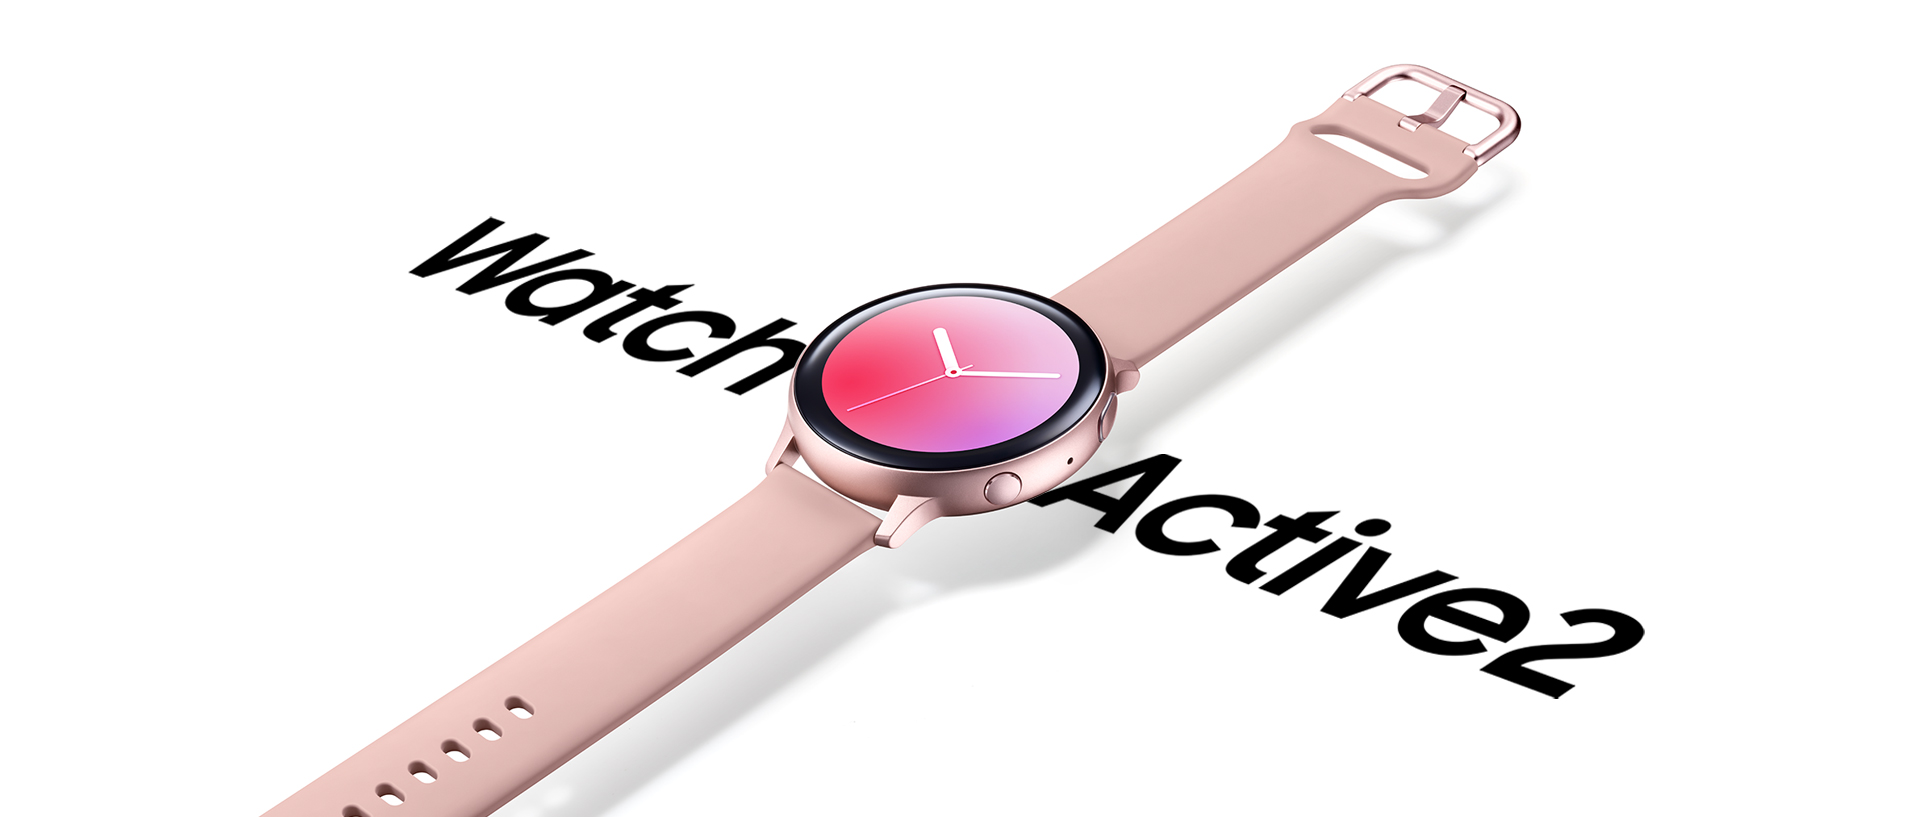 galaxy-watch-active2-kv-image-pc2